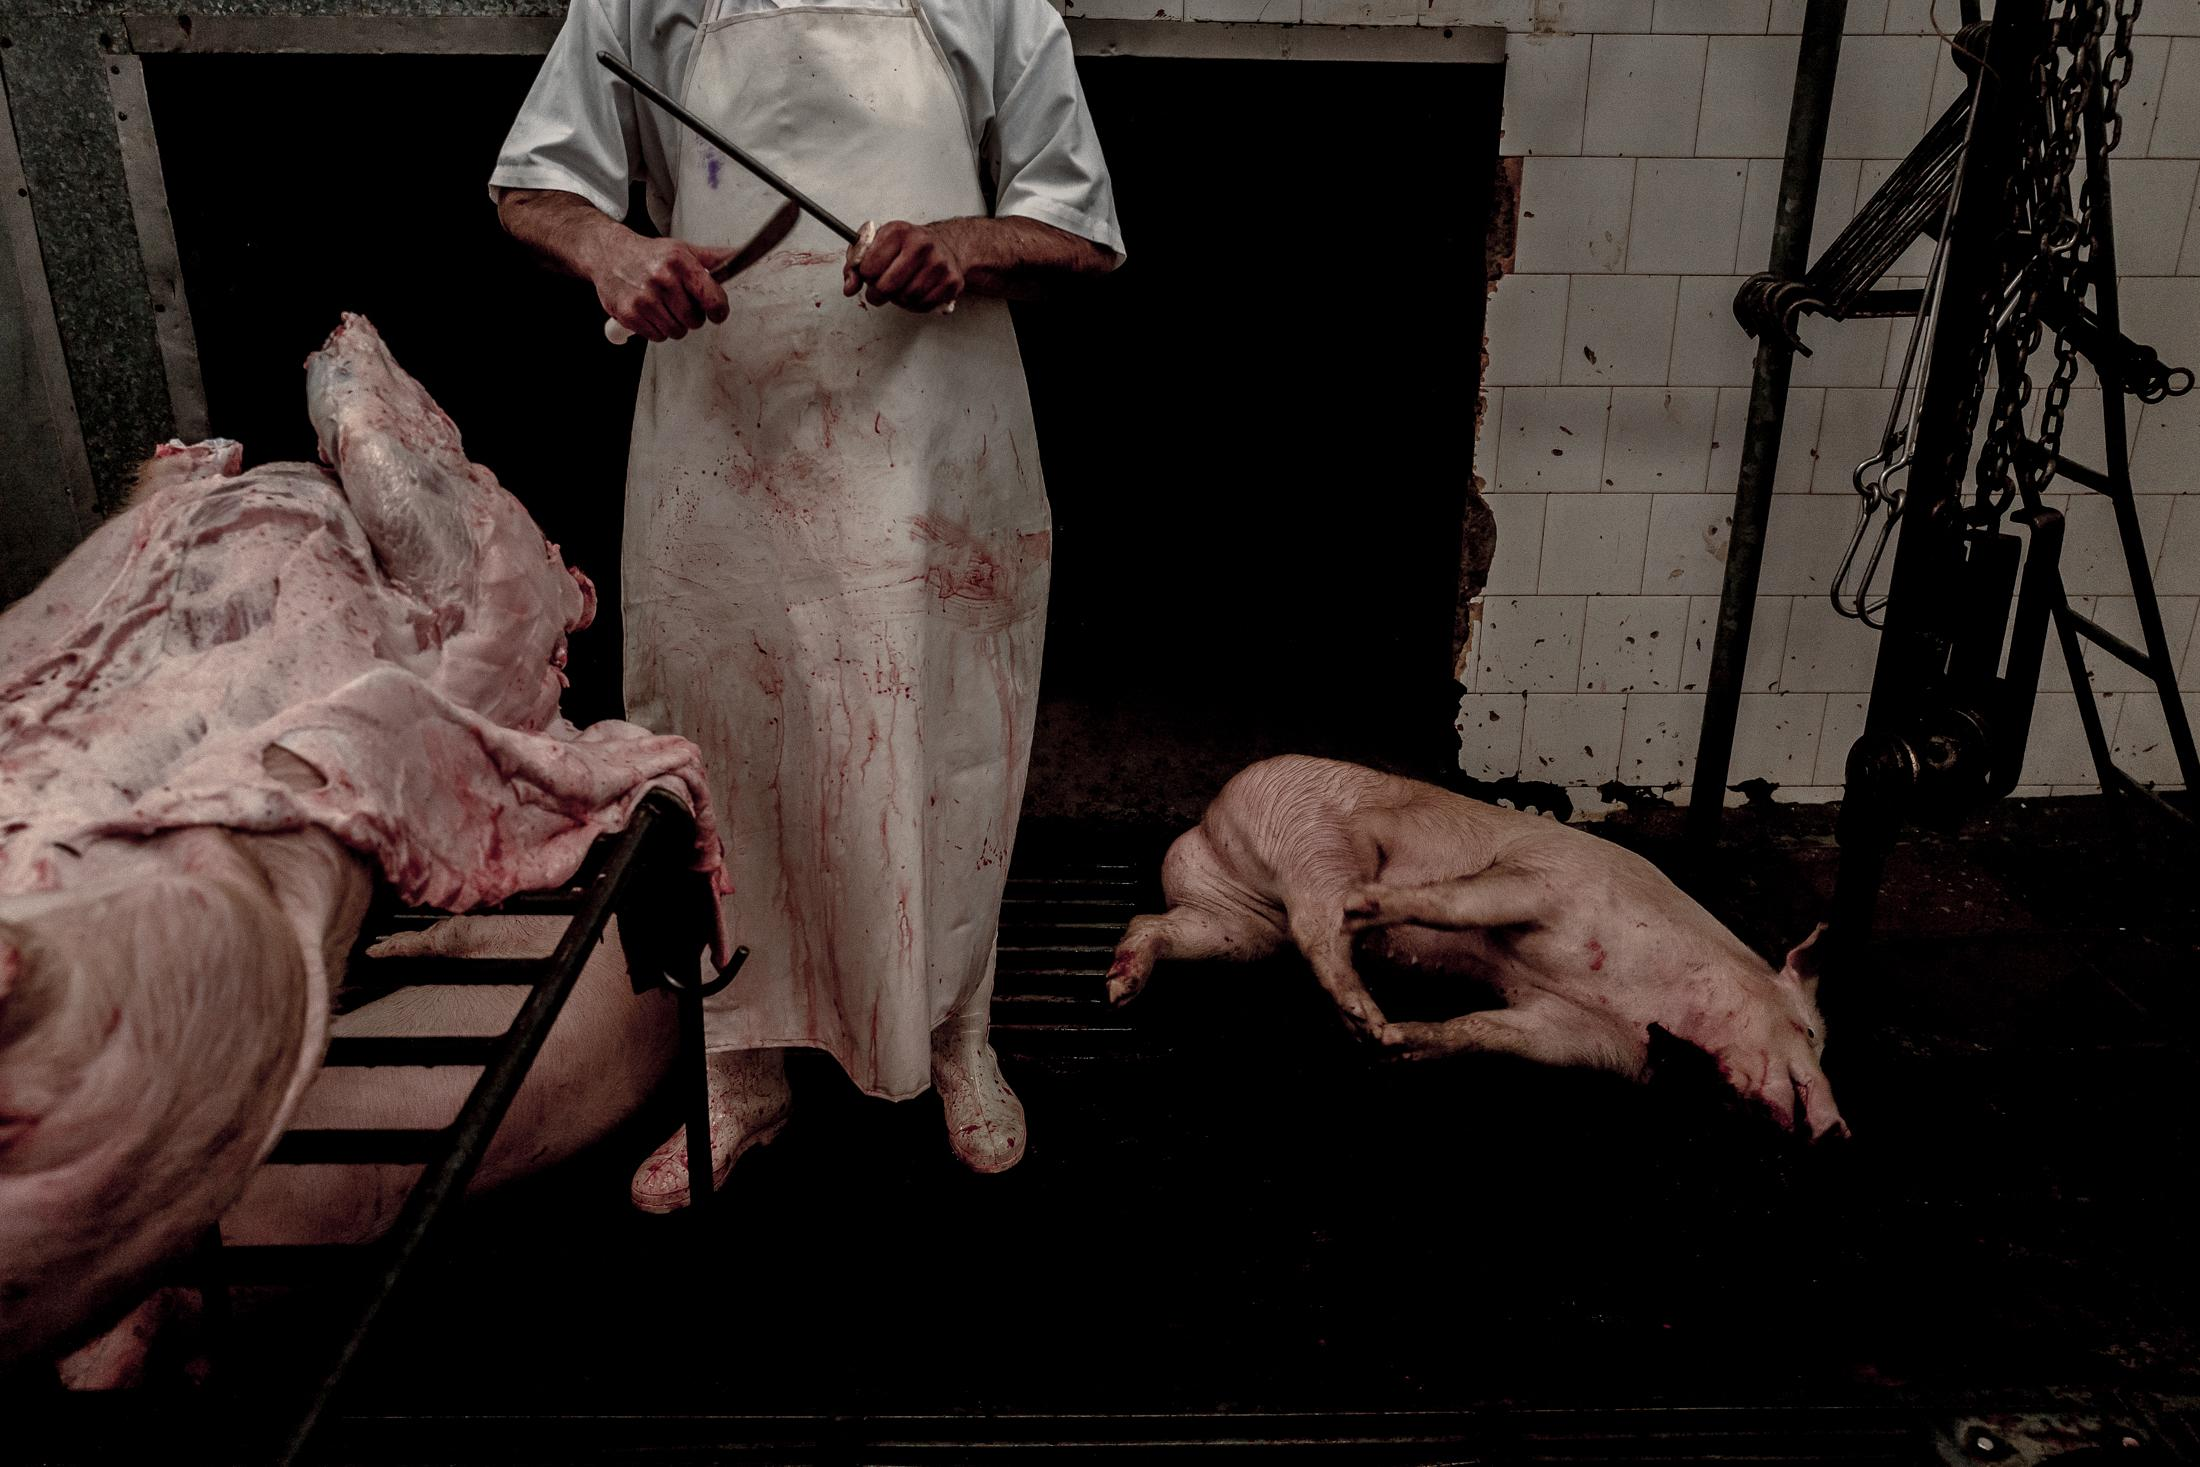 A butcher concludes the slaughter of one more pig. Food security is a major concern on the issue of climate change and the quest for products with lower global warming potential (GWP) is one of the greatest challenges for humanity. Studies show that pork has half the GWP of an ox.